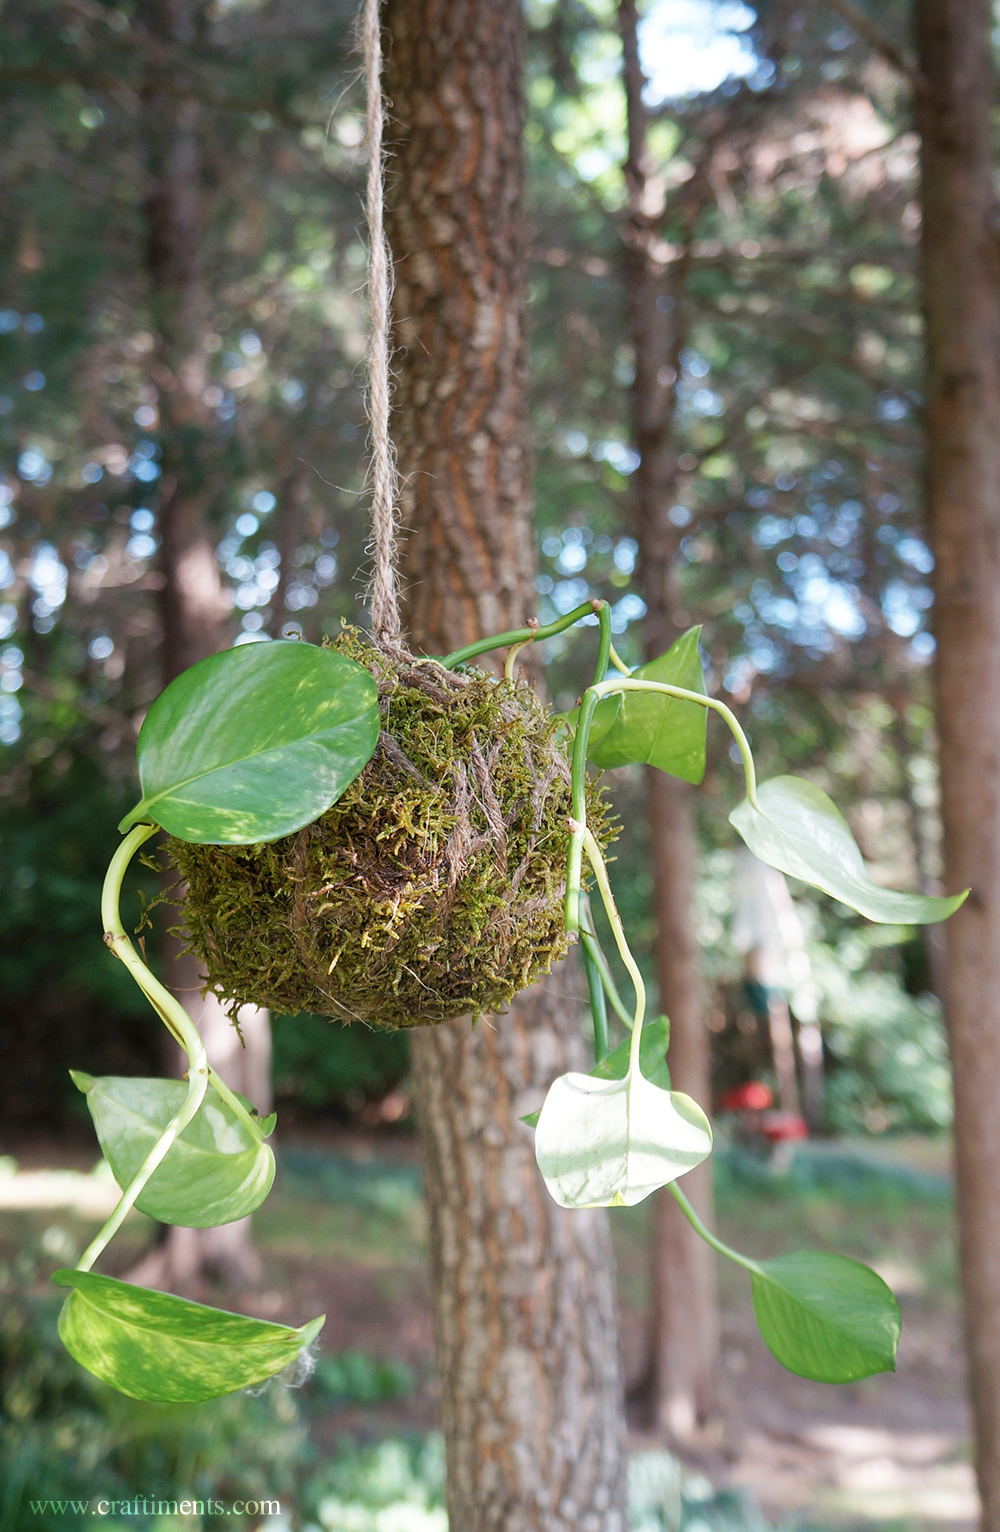 Craftiments:  Pothos plant kokedama hanging outdoors